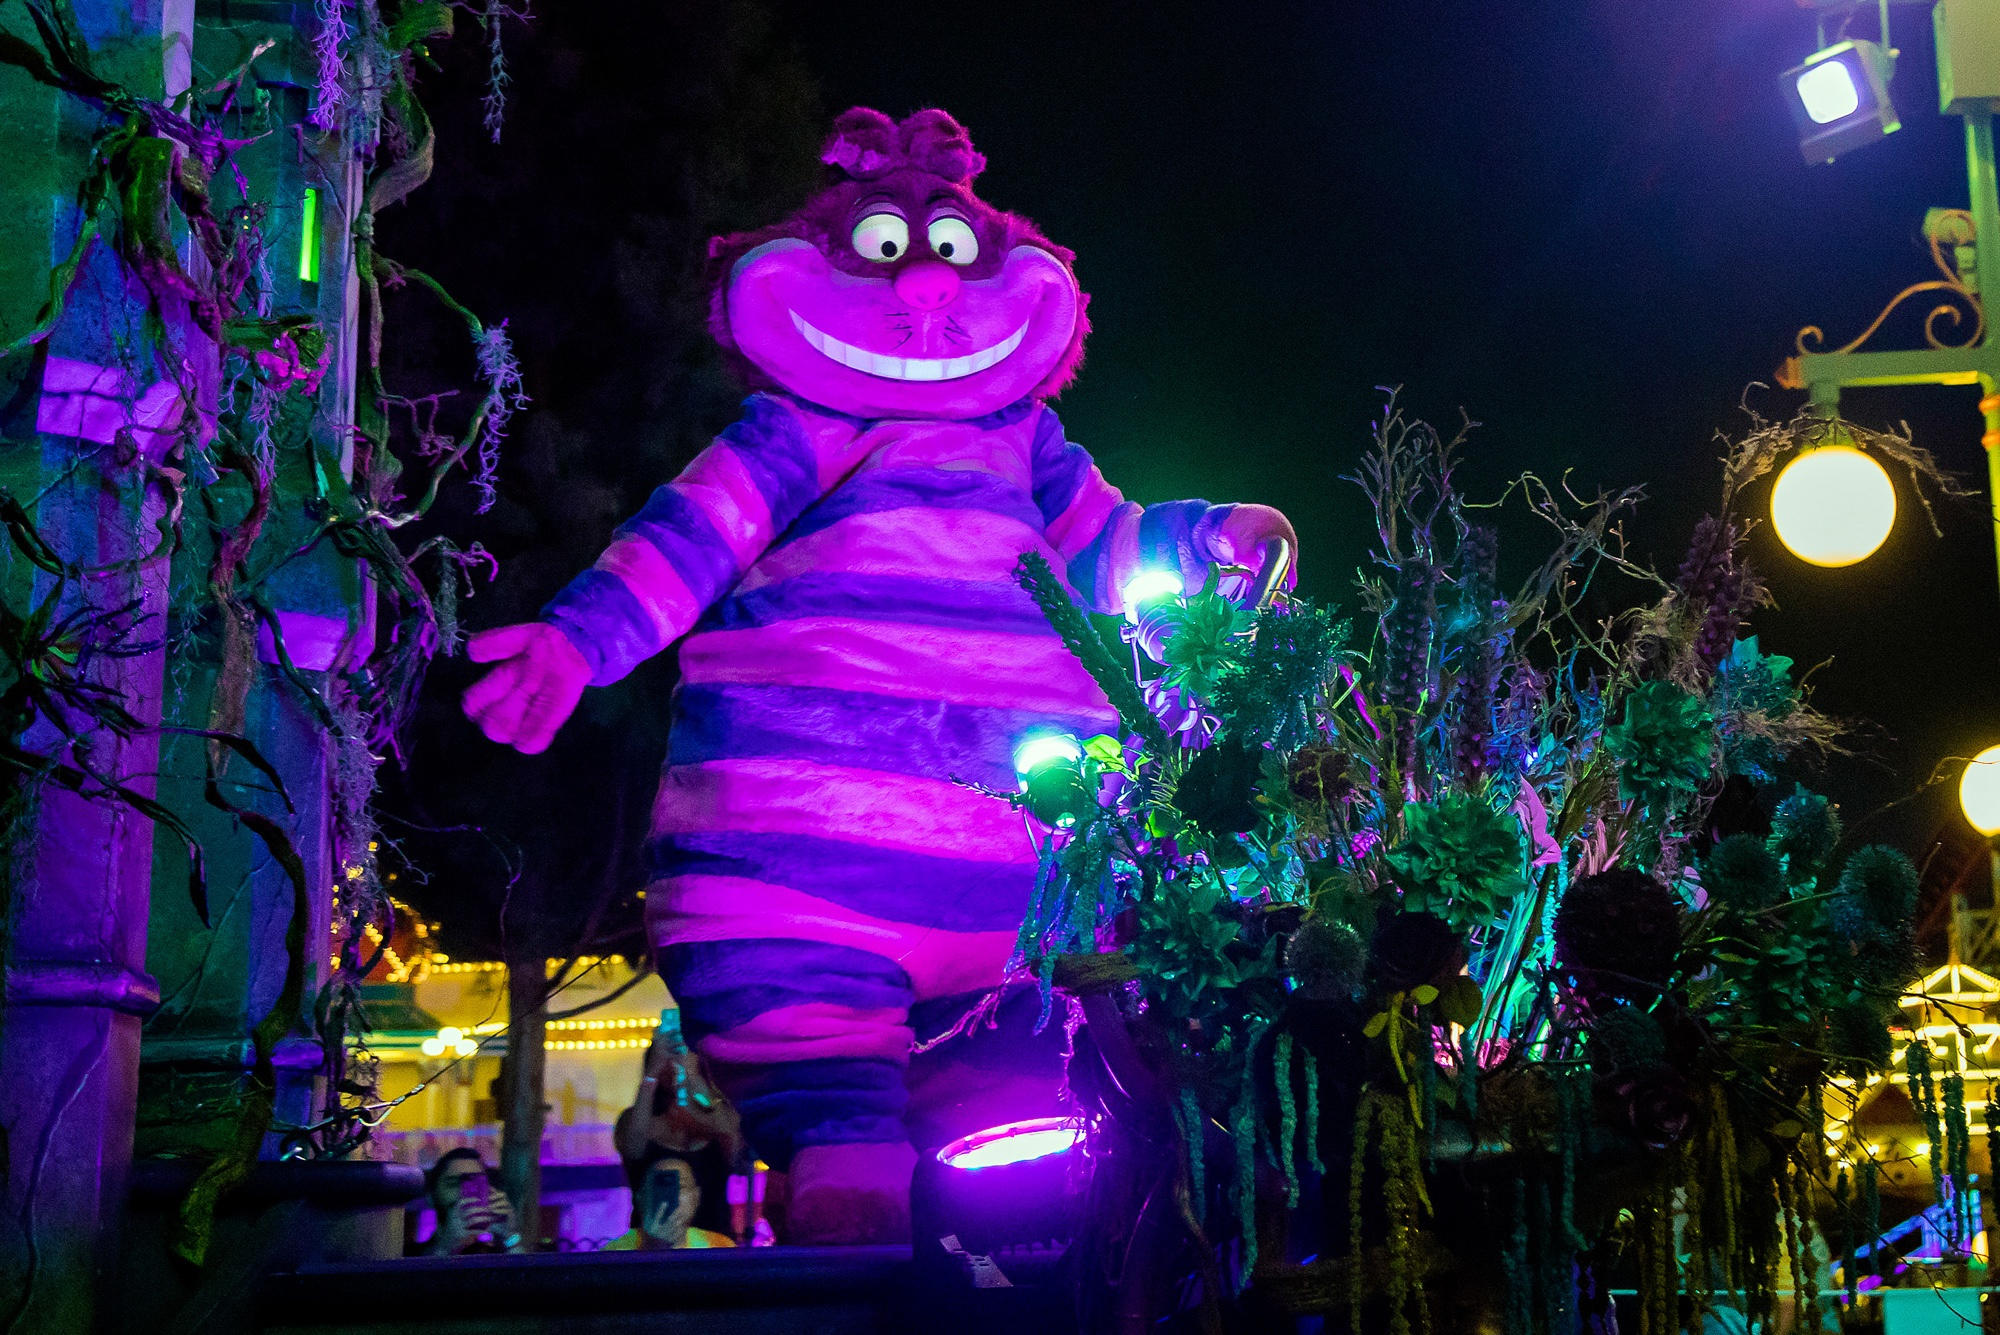 Cheshire Cat in Frightfully Fun Parade at Halloween at Disneyland